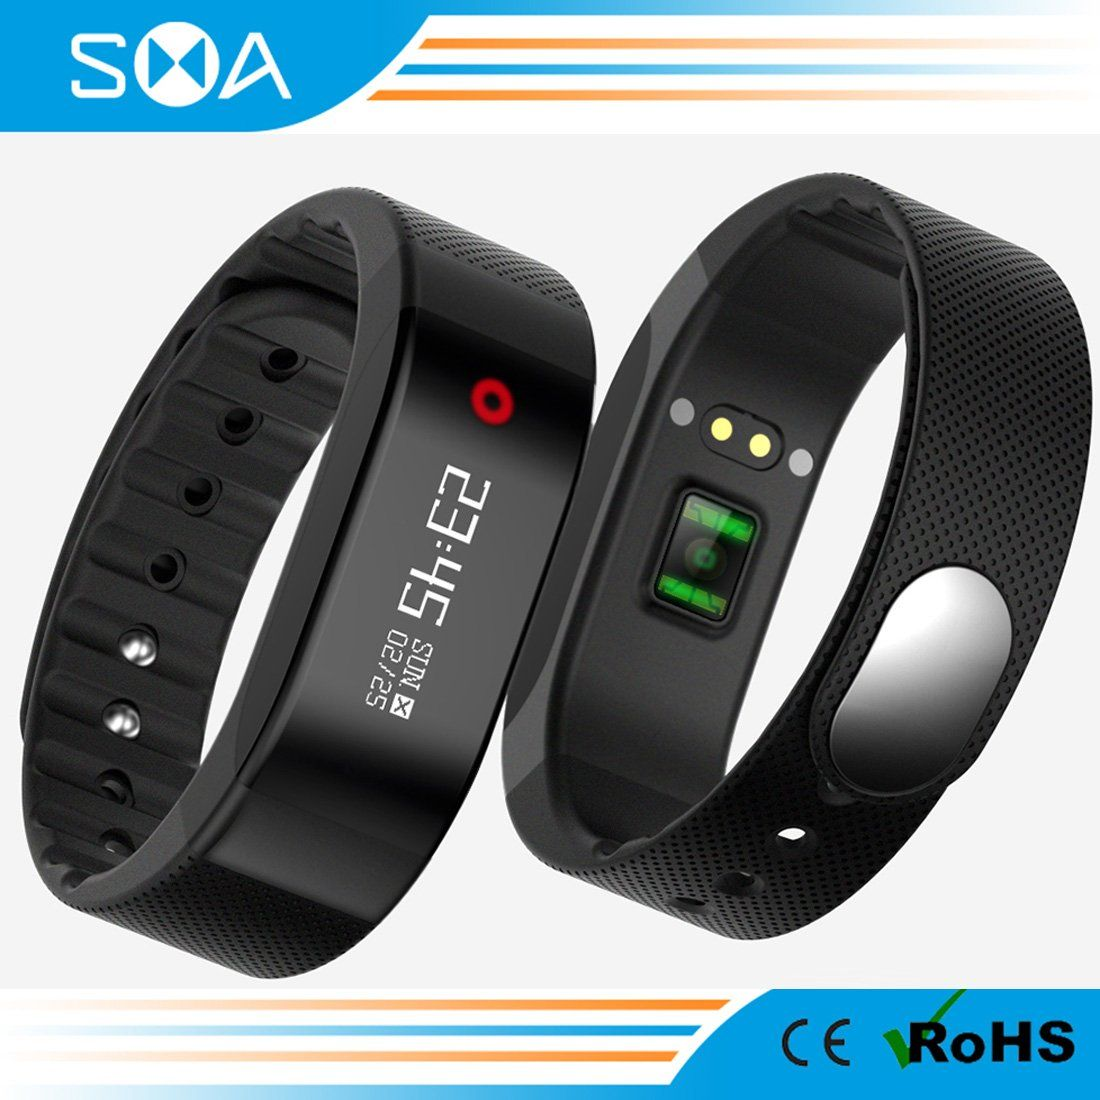 SMA Heart Rate Fitness Tracker, Waterproof Wristband Smart Watch Sports Bracelet Compatible Iphone/Android phones men/women Black. 1)Two Mode of dynamic heart rate monitor: a.Monitor your heart rate 24 hours, you can set in Application, every 15 or 30 or 60 minutes checking once, then SMA Wristband will monitor your heart rate every 15 or 30 or 60 minutes once automatically. After you contact your phone by bluetooth And Application will supply graph for review.b.Long press the touch bu...